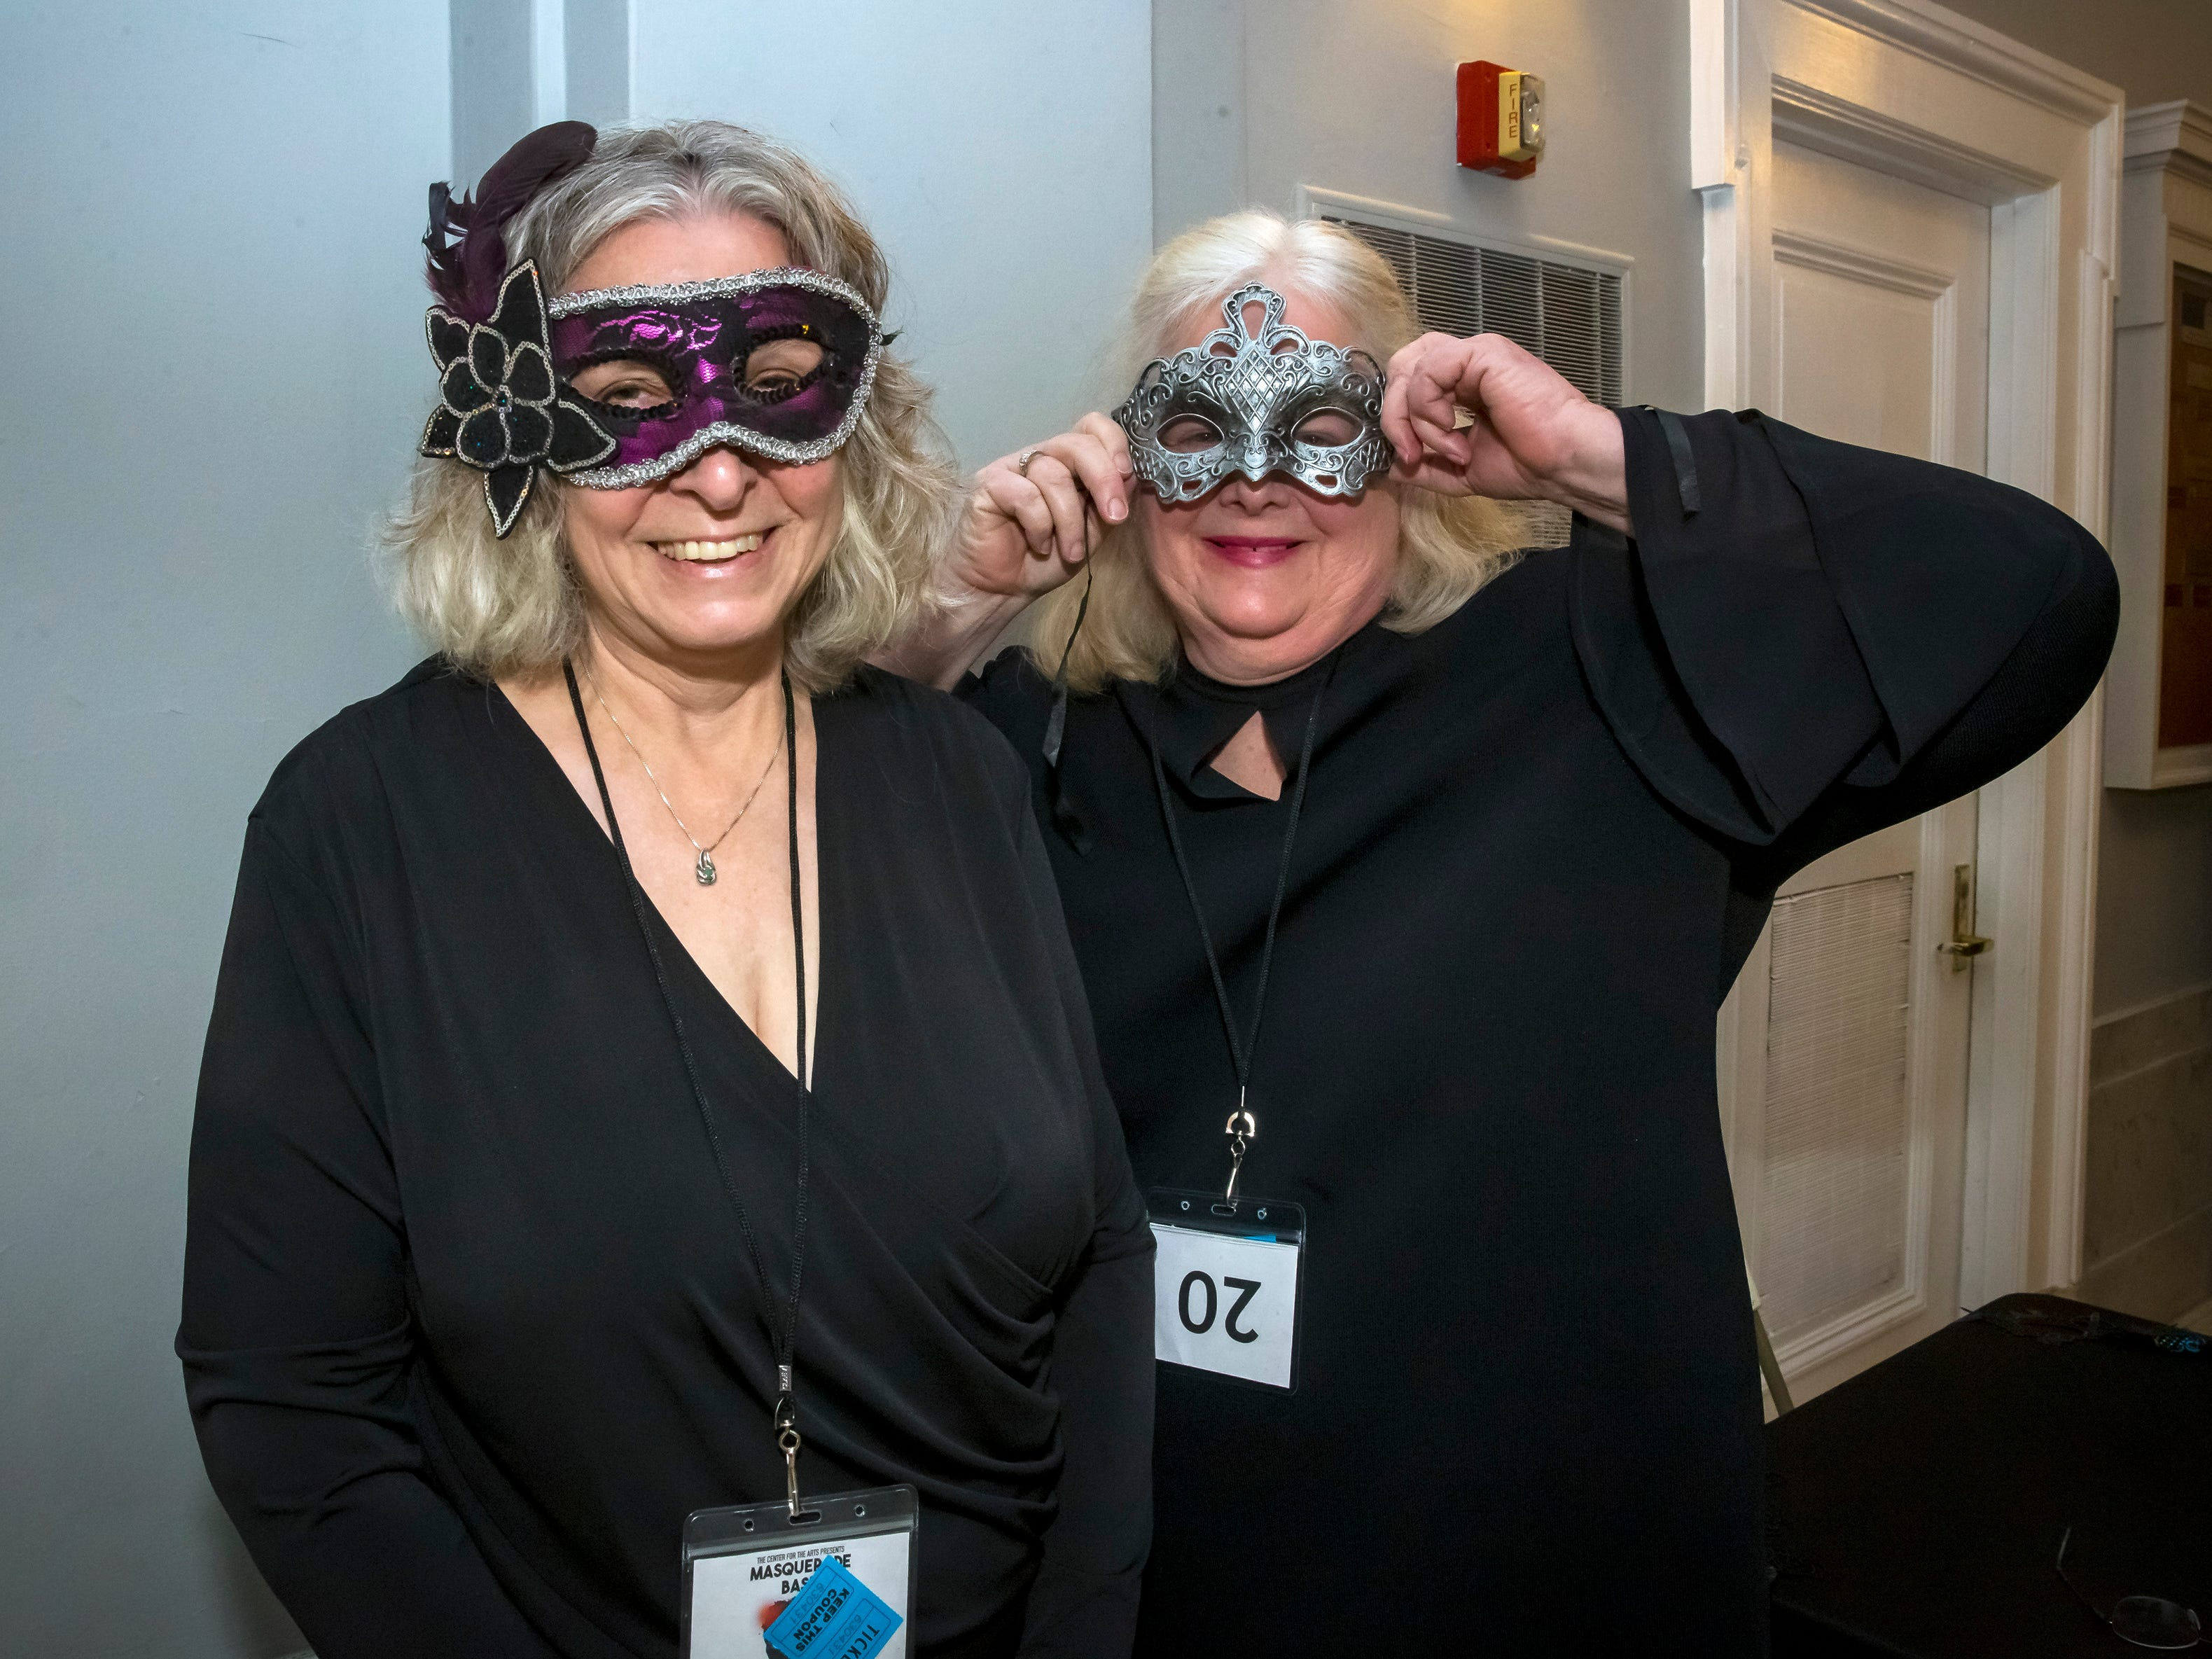 Joan Bentley and Diane Weaver at the Masquerade Bash at the Center for the Arts on Saturday, April 14, 2019.